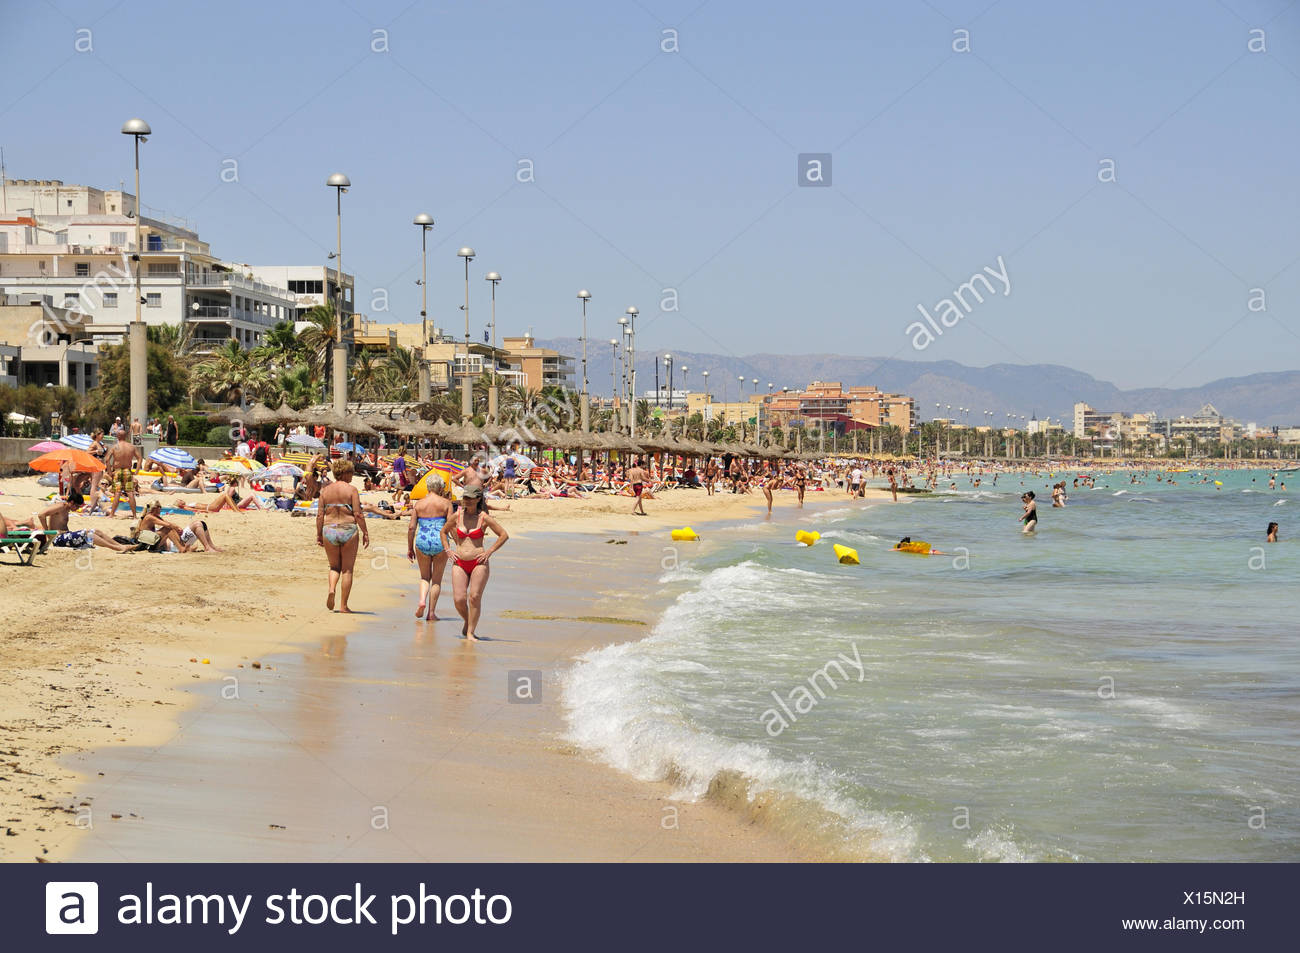 geography / travel, Spain, bather in El Arenal at the playa de Palma, Majorca, Balearics, Additional-Rights-Clearance-Info-Not-Available - Stock Image